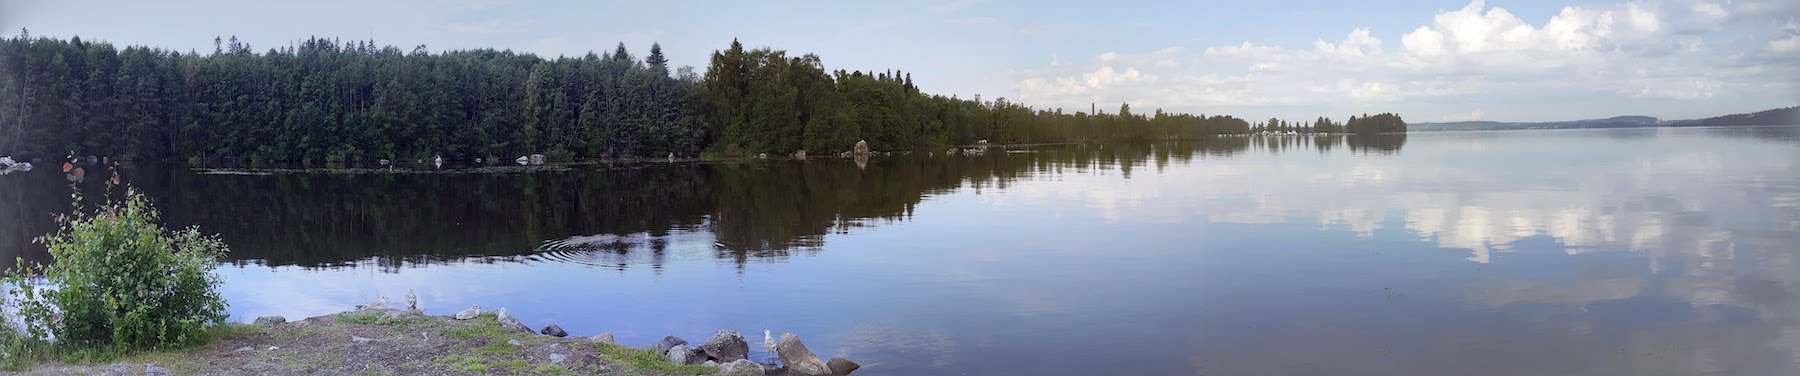 Lake view outside Tampere Finland